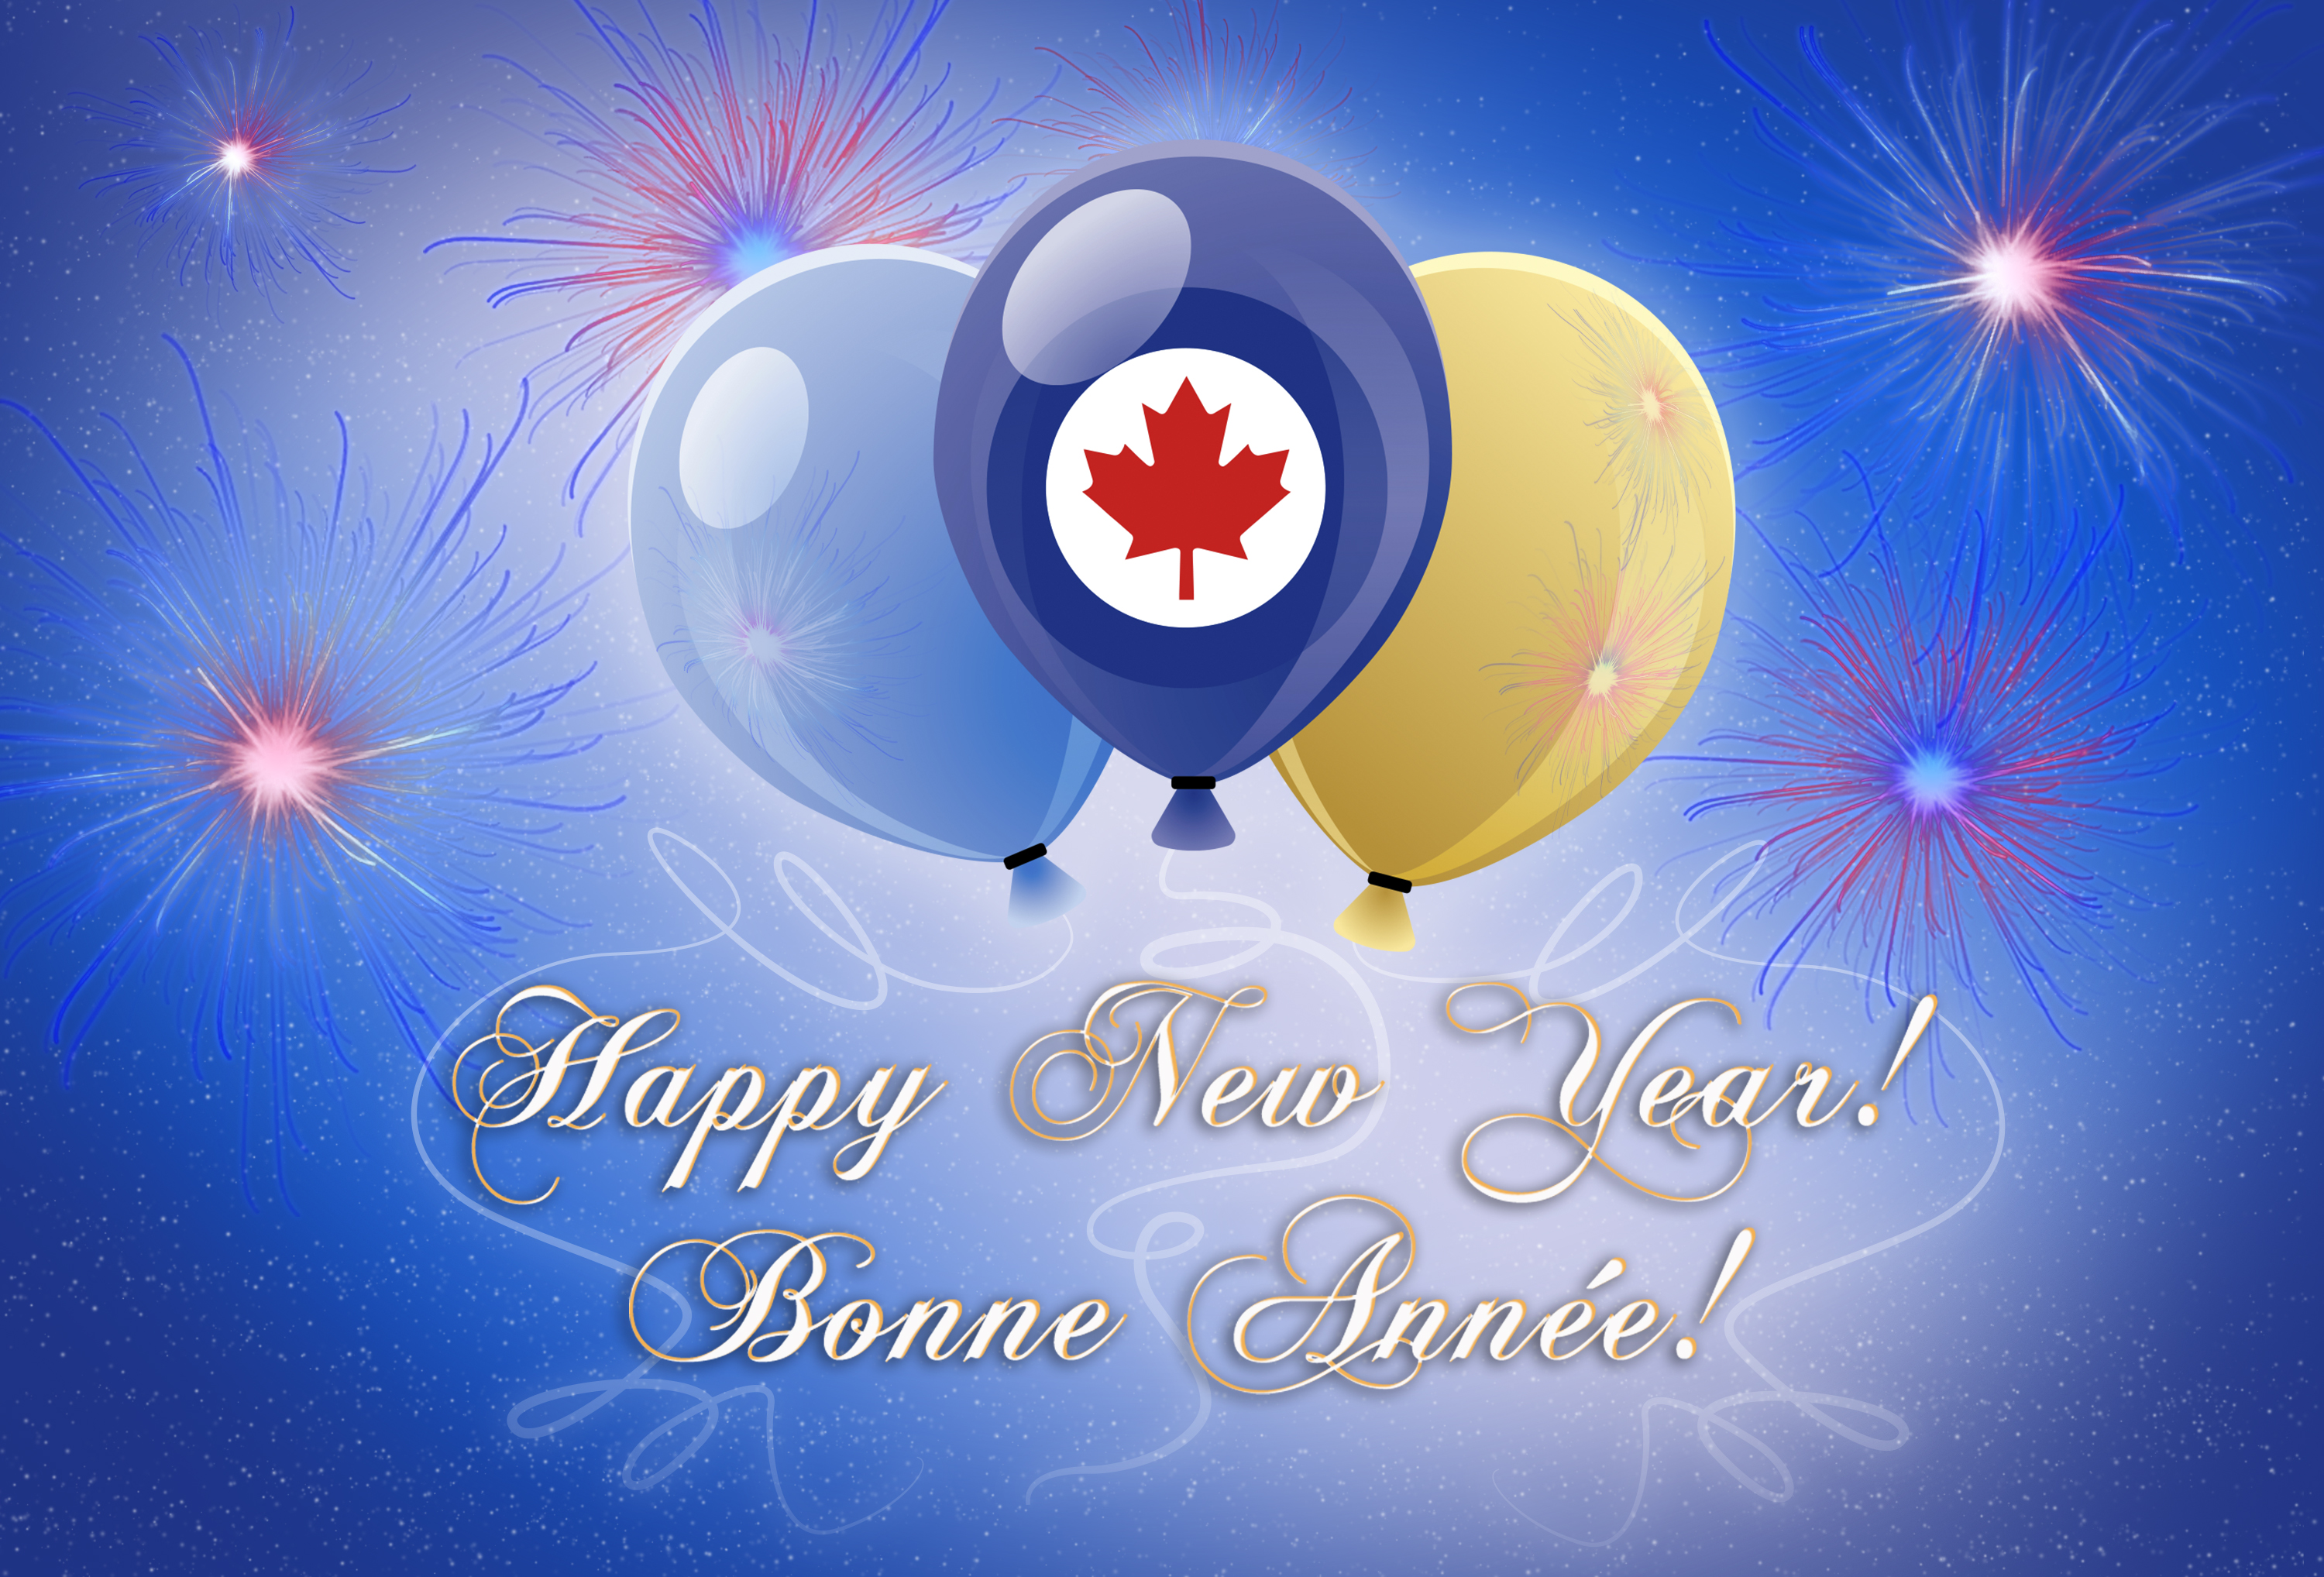 A graphic image portraying fireworks, balloons and the RCAF roundel.